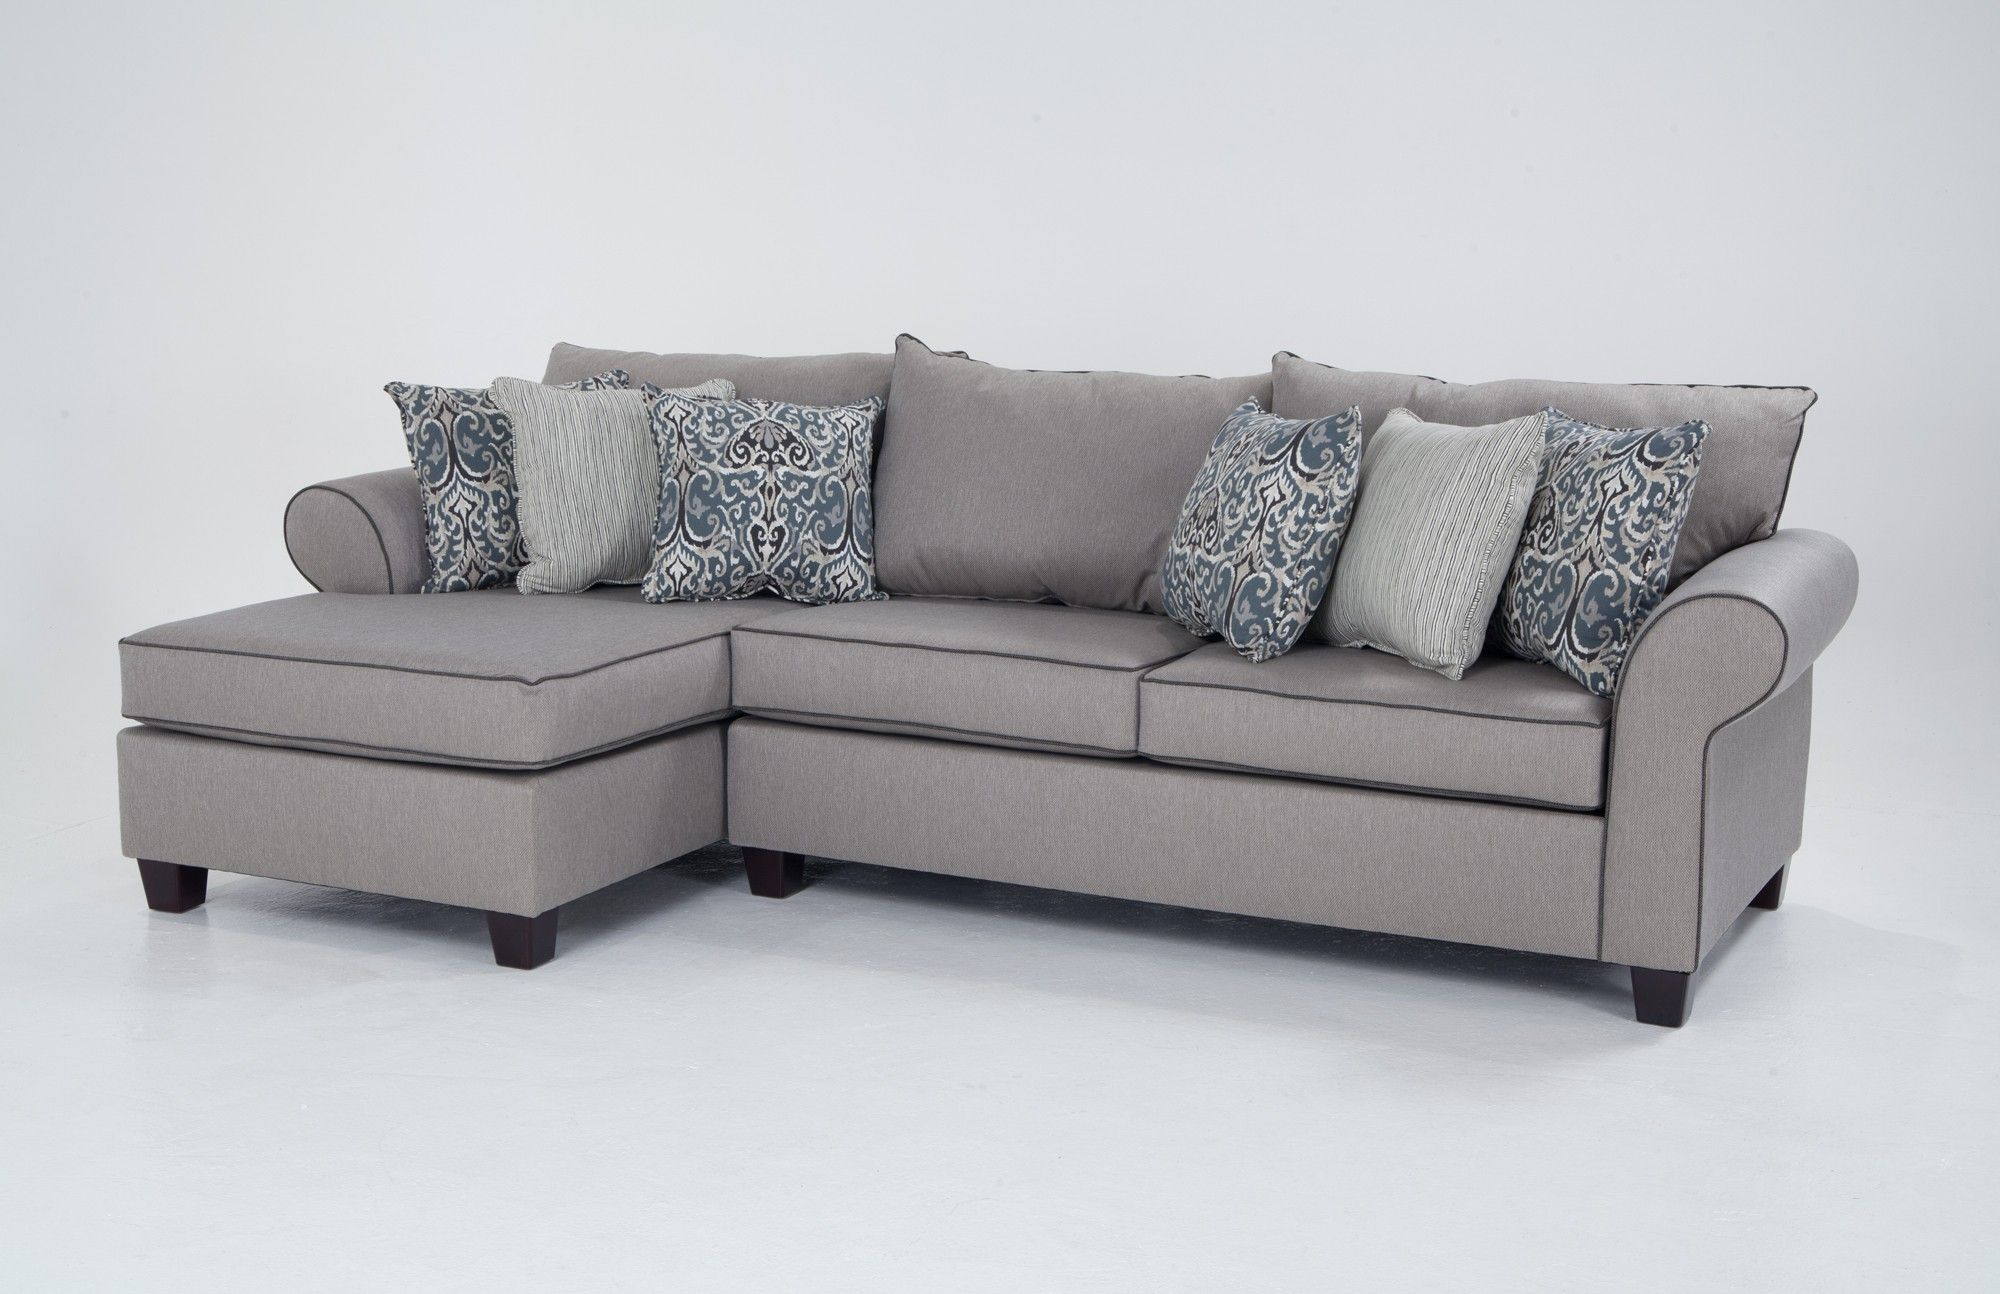 living room furniture discount table set big lots ashton 2 piece right arm facing sectional sofa with bob o pedic memory foam seating sleeper sets